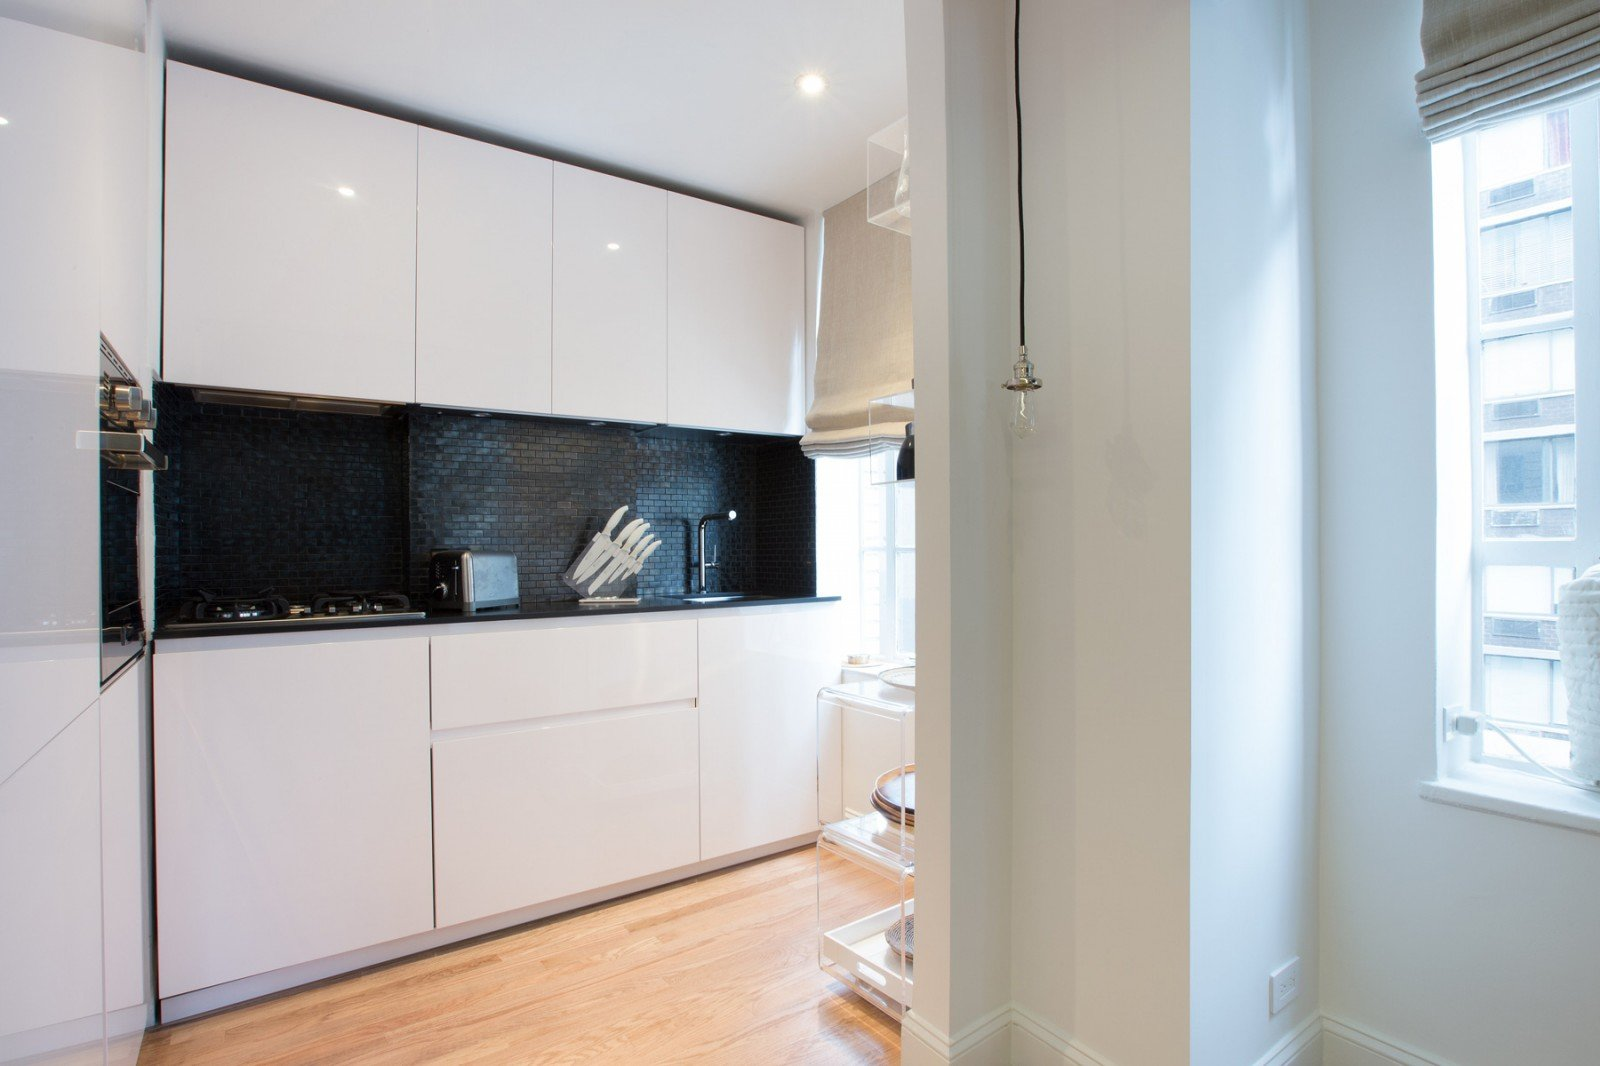 The kitchen features glossy white lacquer cabinets